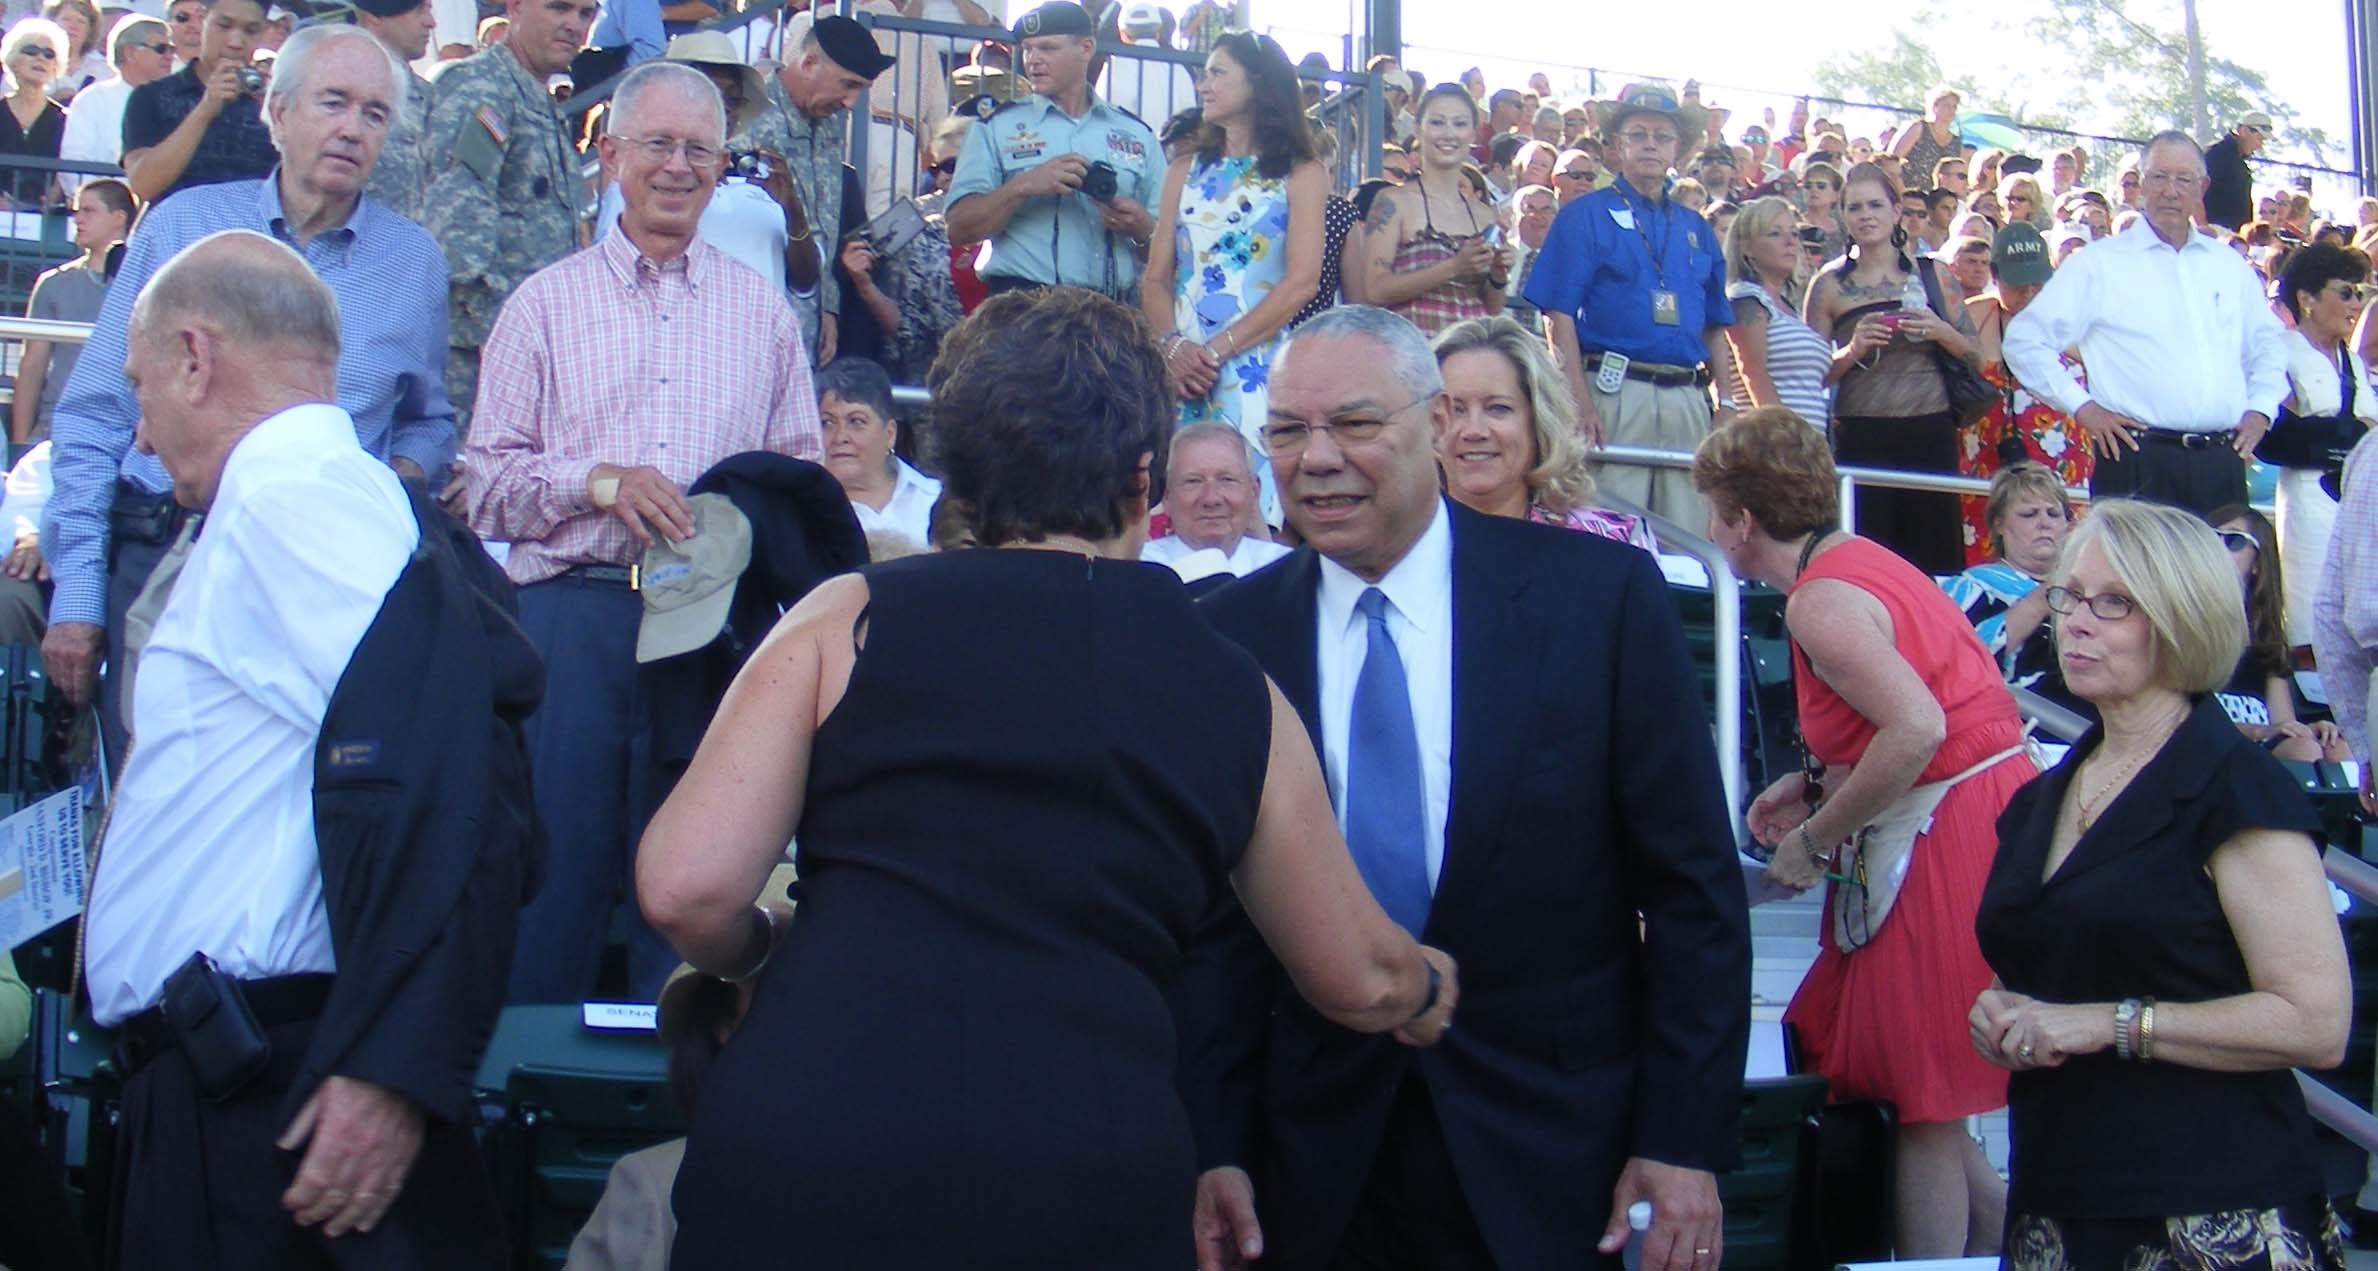 Museum director MG (R) Jerry White left removes coat,  former Sec. of State Colin Powell greets fellow attendee,  Parade Field stands, National Infantry Museum